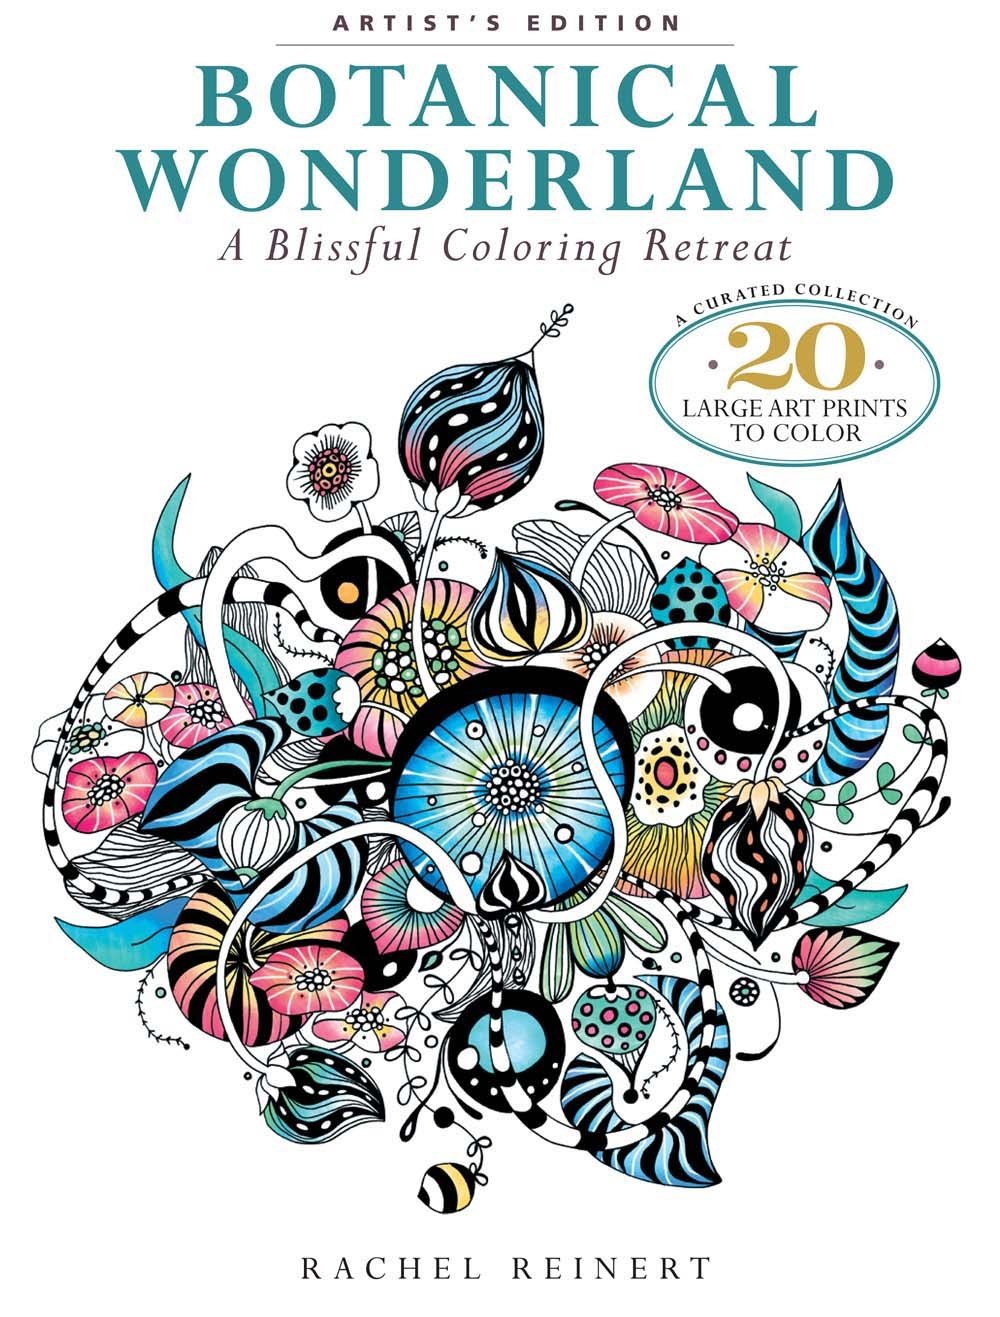 Botanical Wonderland: Artist's Edition: A Blissful Coloring Retreat: A Curated Collection - 20 Large Art Prints to Color